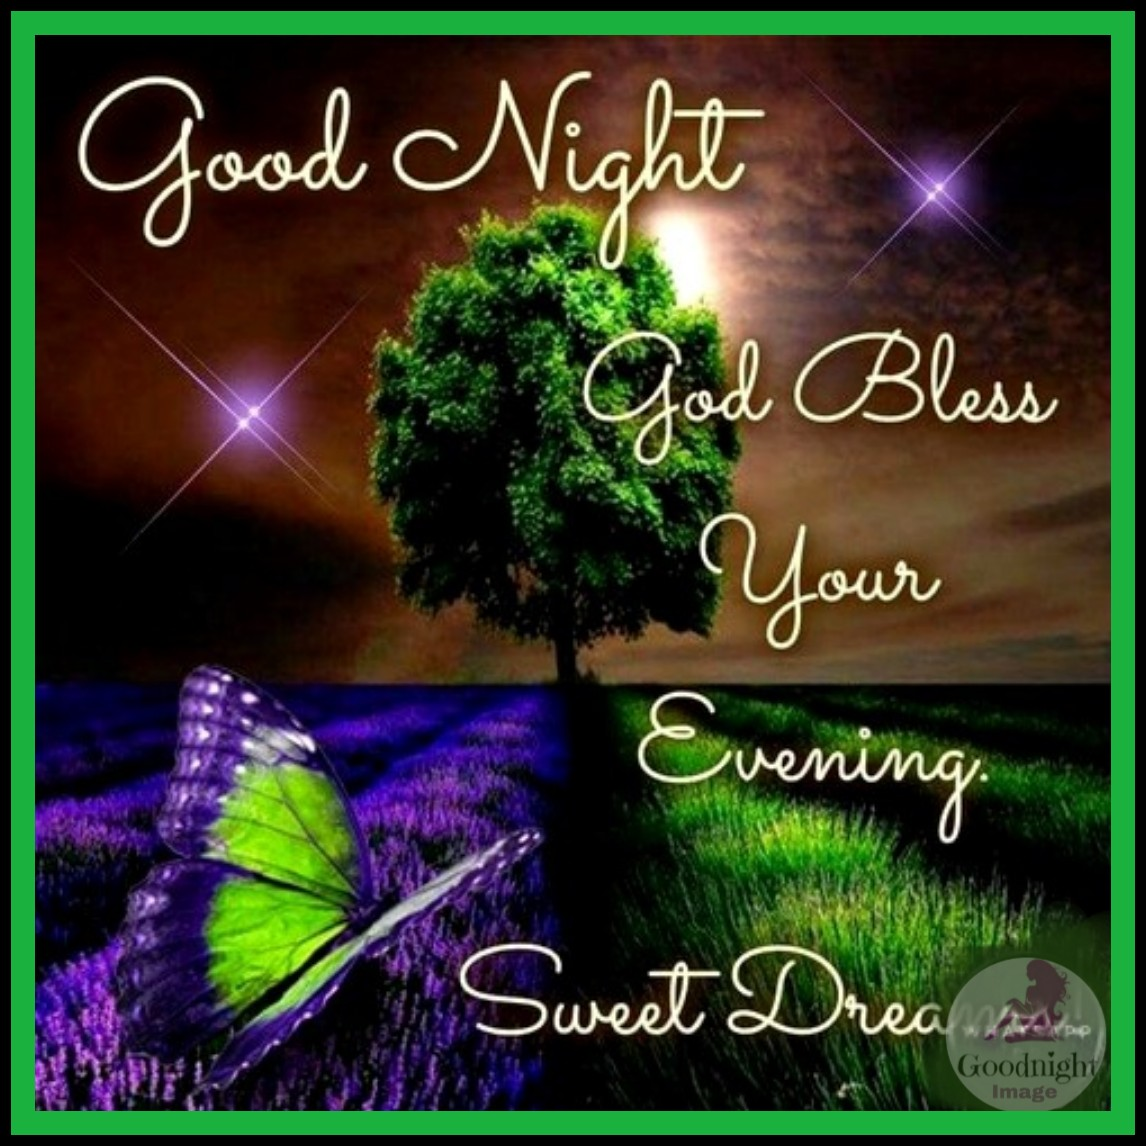 Positive Thoughts Of Good Night HD Image With Quotes